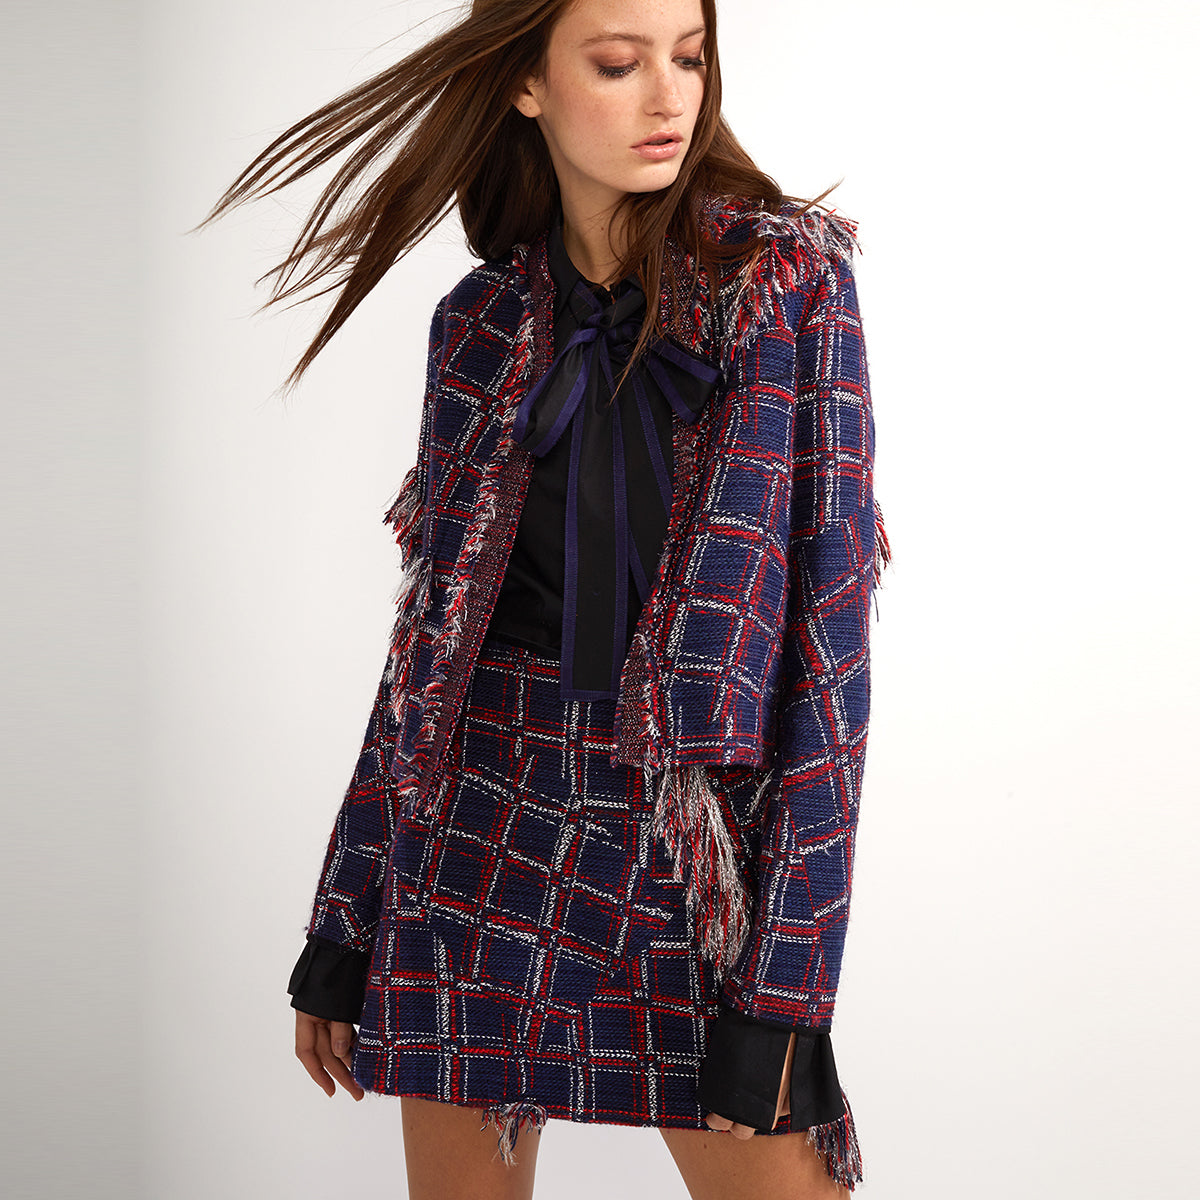 Model wearing a plaid fringe tweed jacket and mini skirt